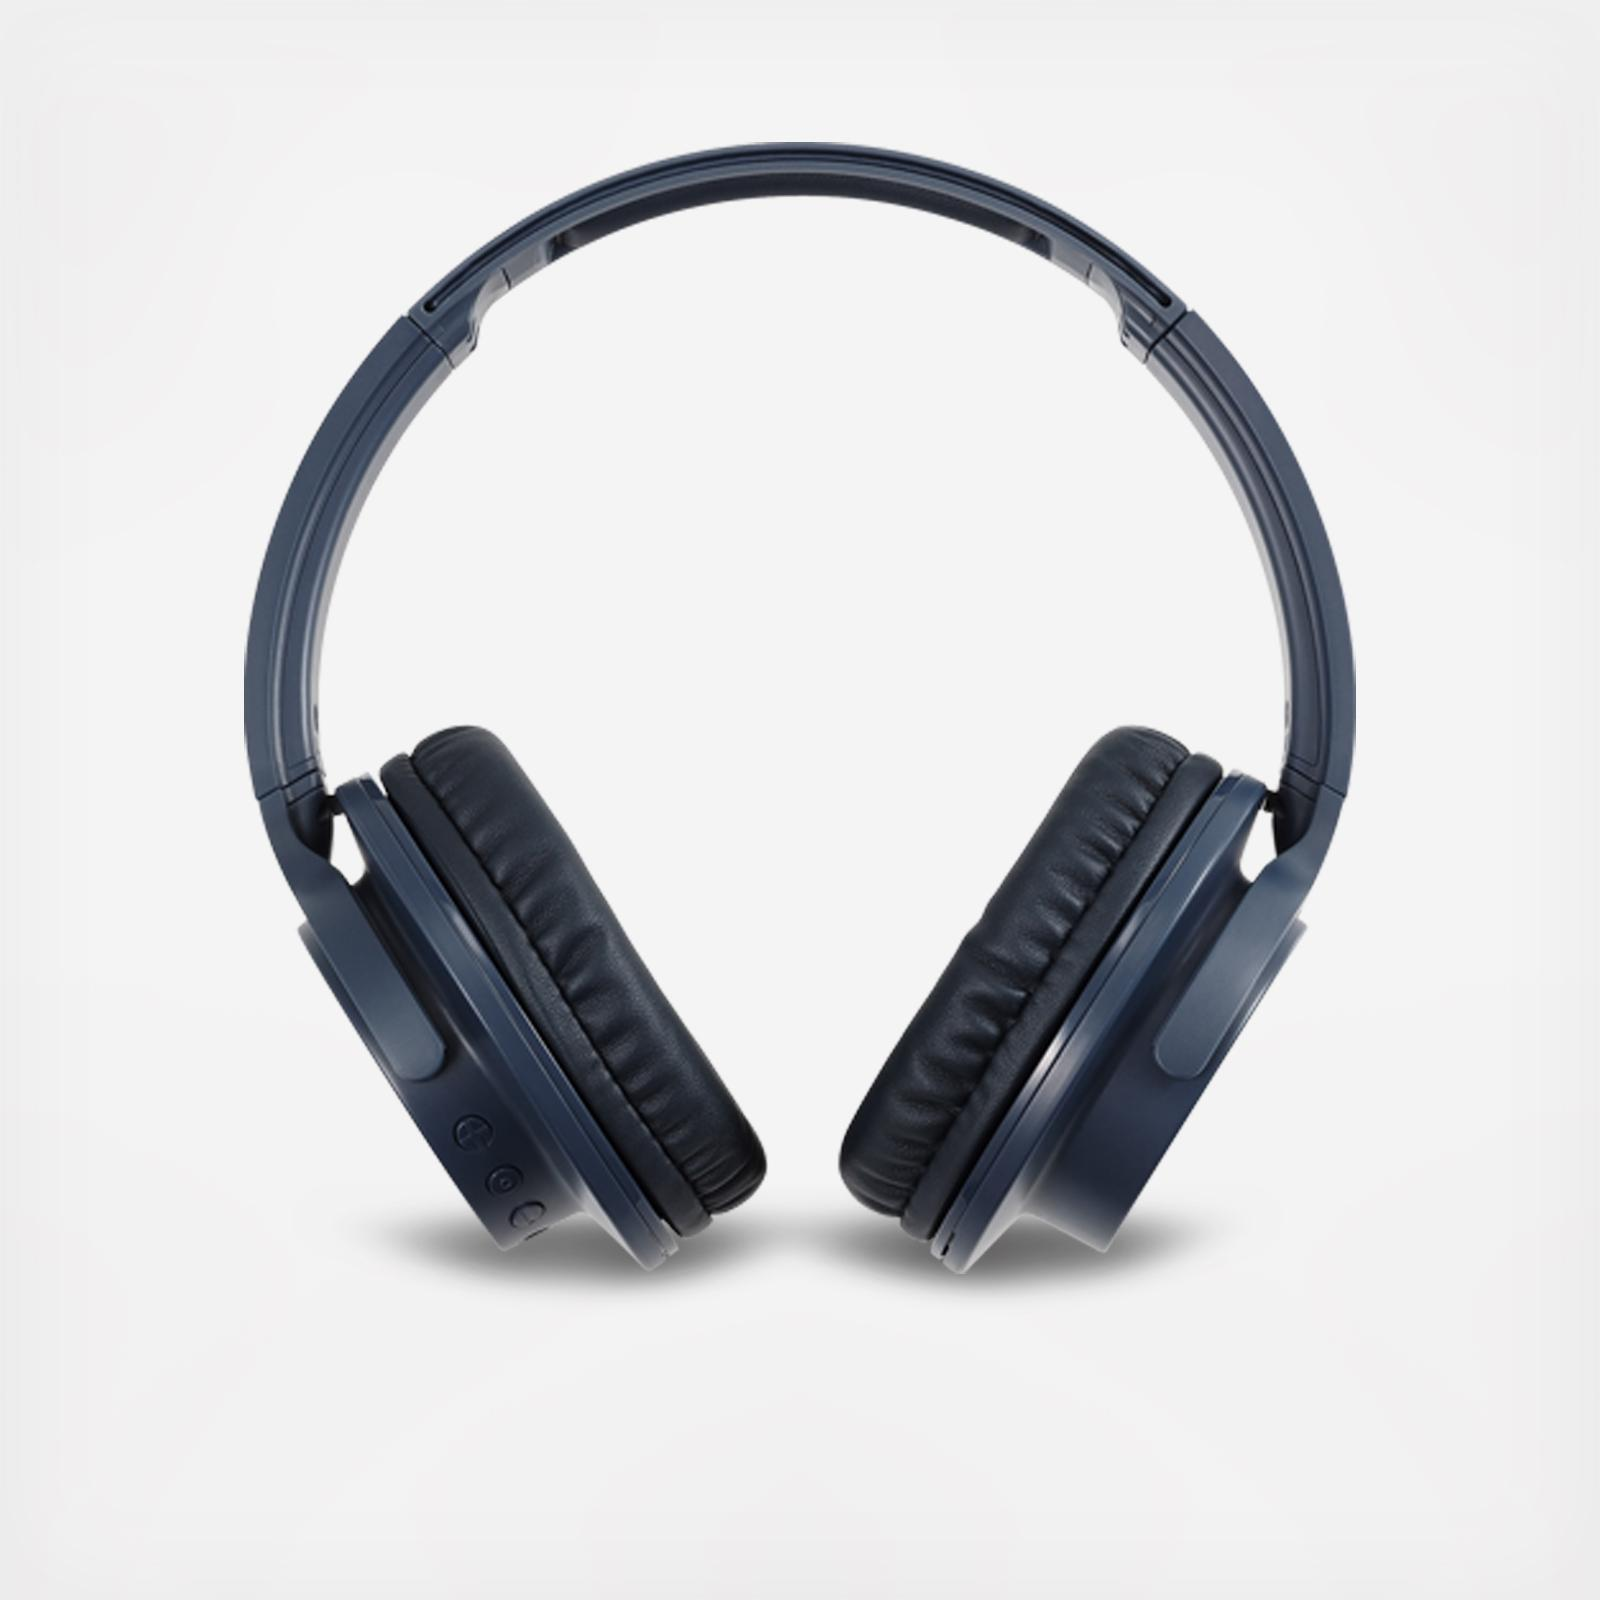 Quietpoint Ath Anc500bt Wireless Noise Cancelling Headphones